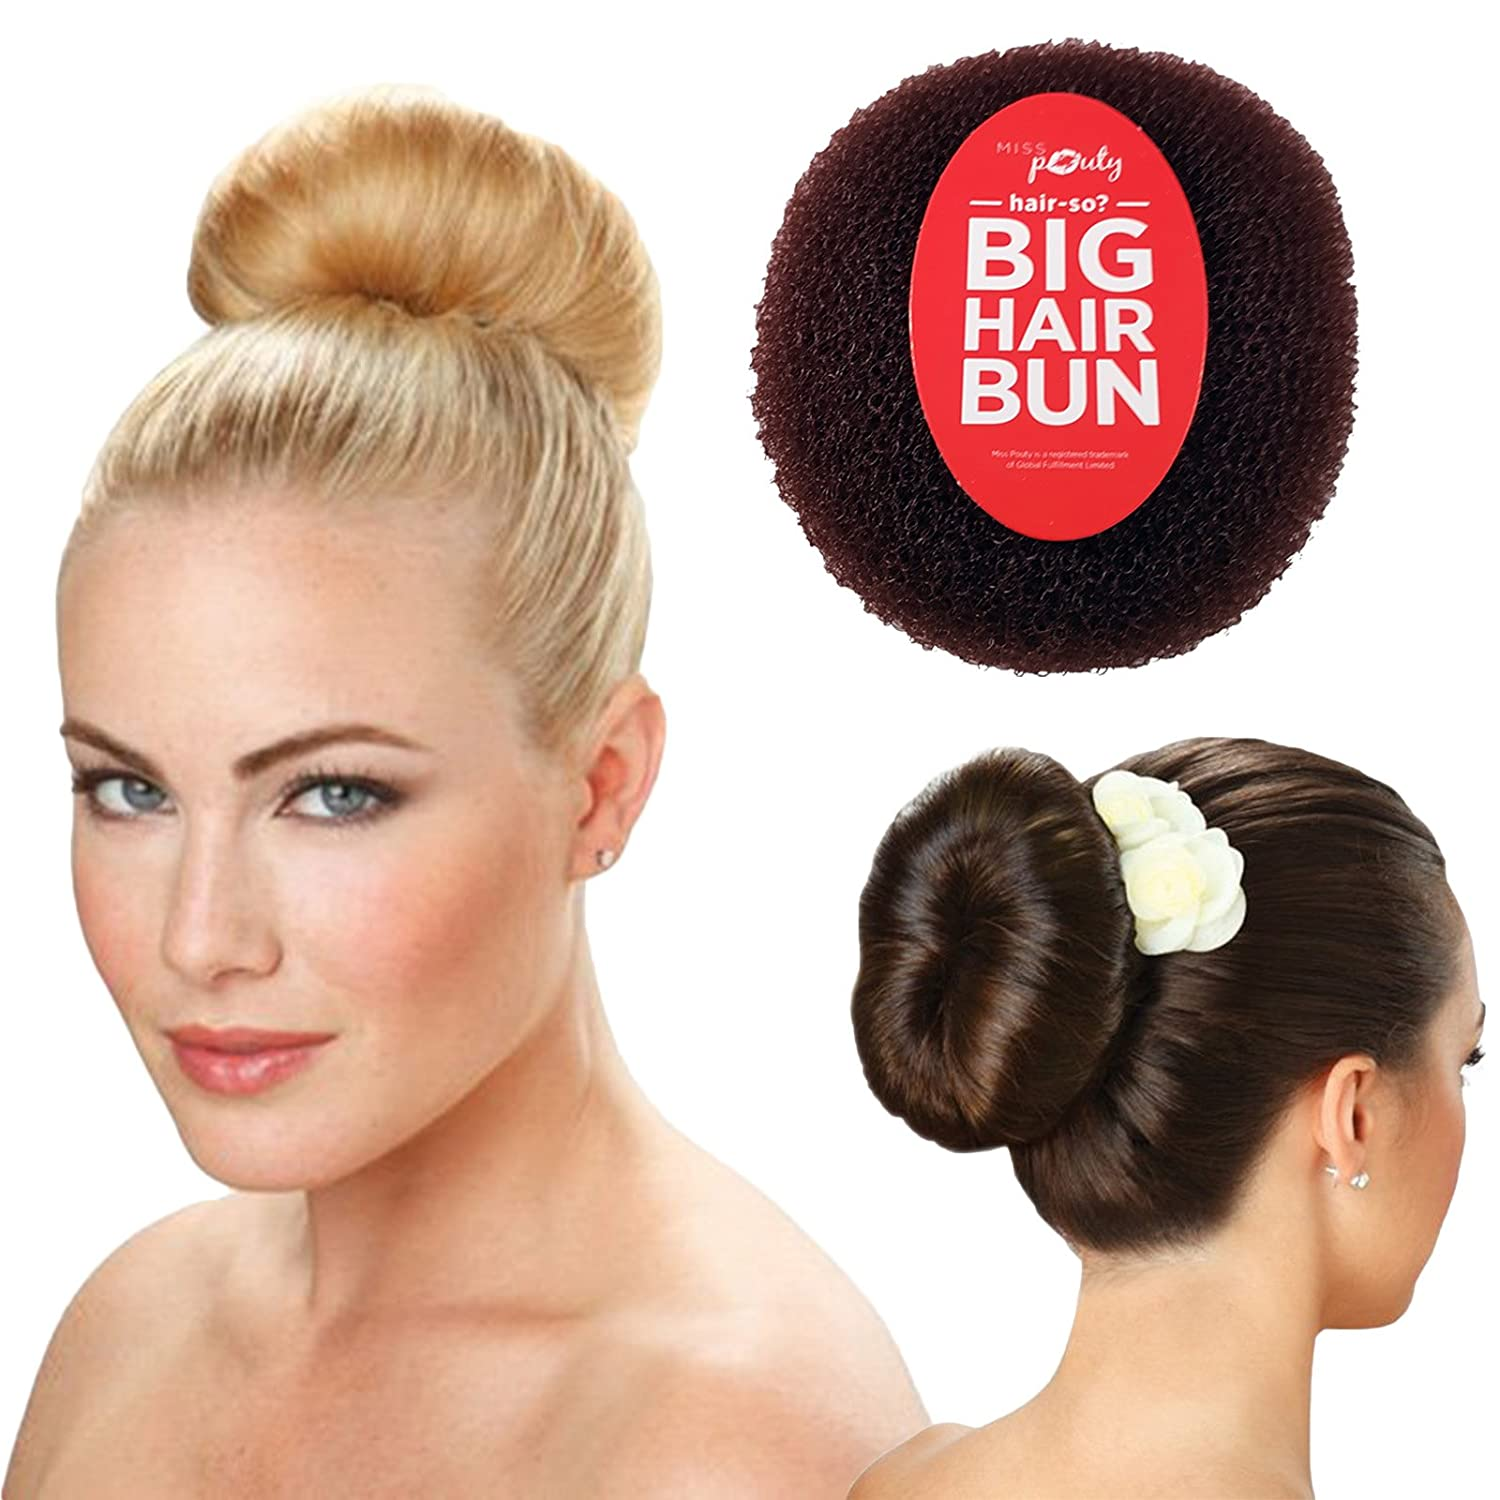 Hair-so? Massive 6 Inches Wide Big Hair Bun Extra Large Hair Doughnut Donut Bridal Wedding Hollywood Hair Style Bun Ring - Choose Colour- Brown, Black or Blonde (Brown) Miss Pouty